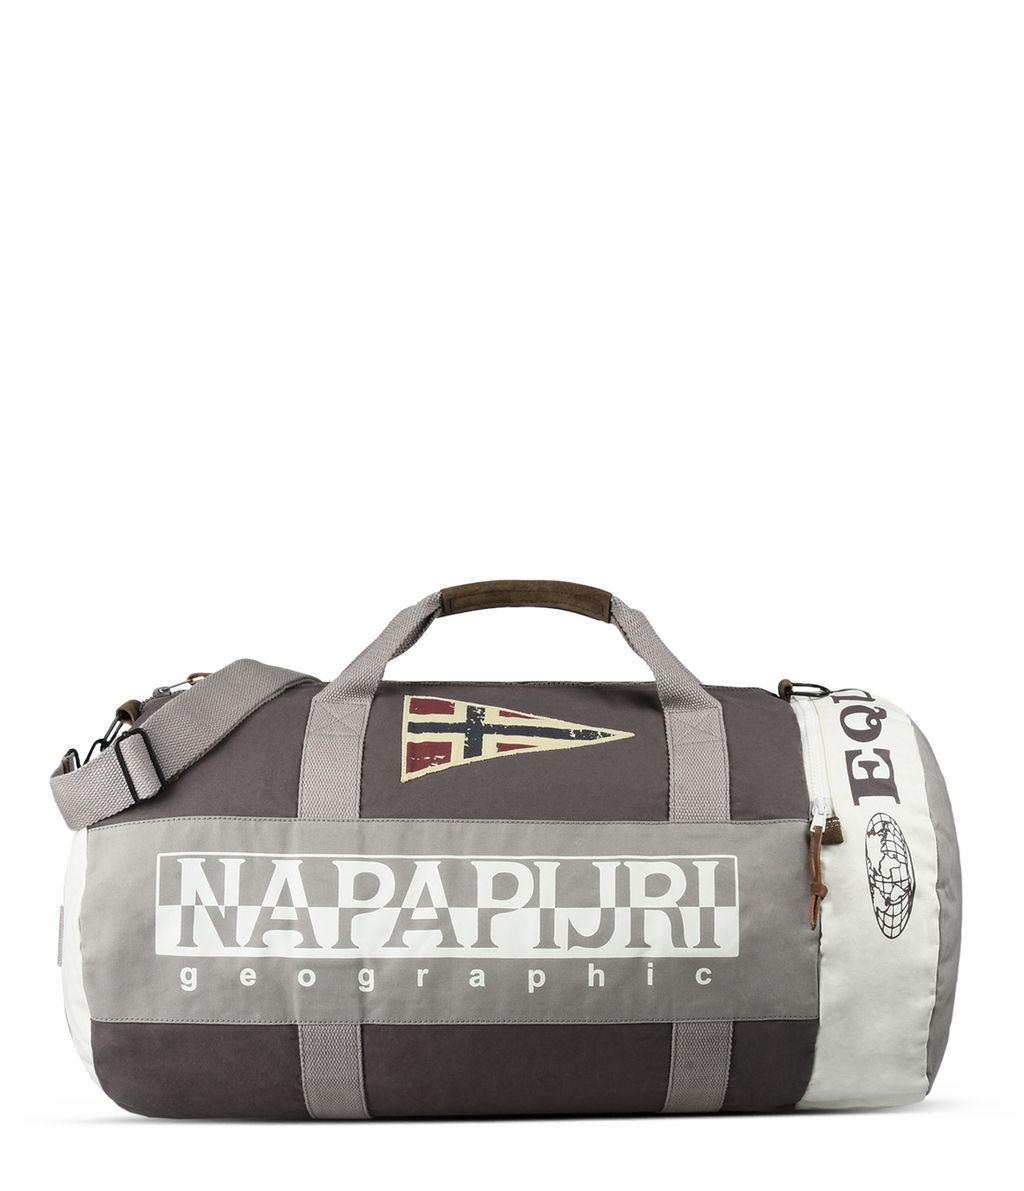 NAPAPIJRI EQUATOR   TRAVEL BAG,LIGHT GREY